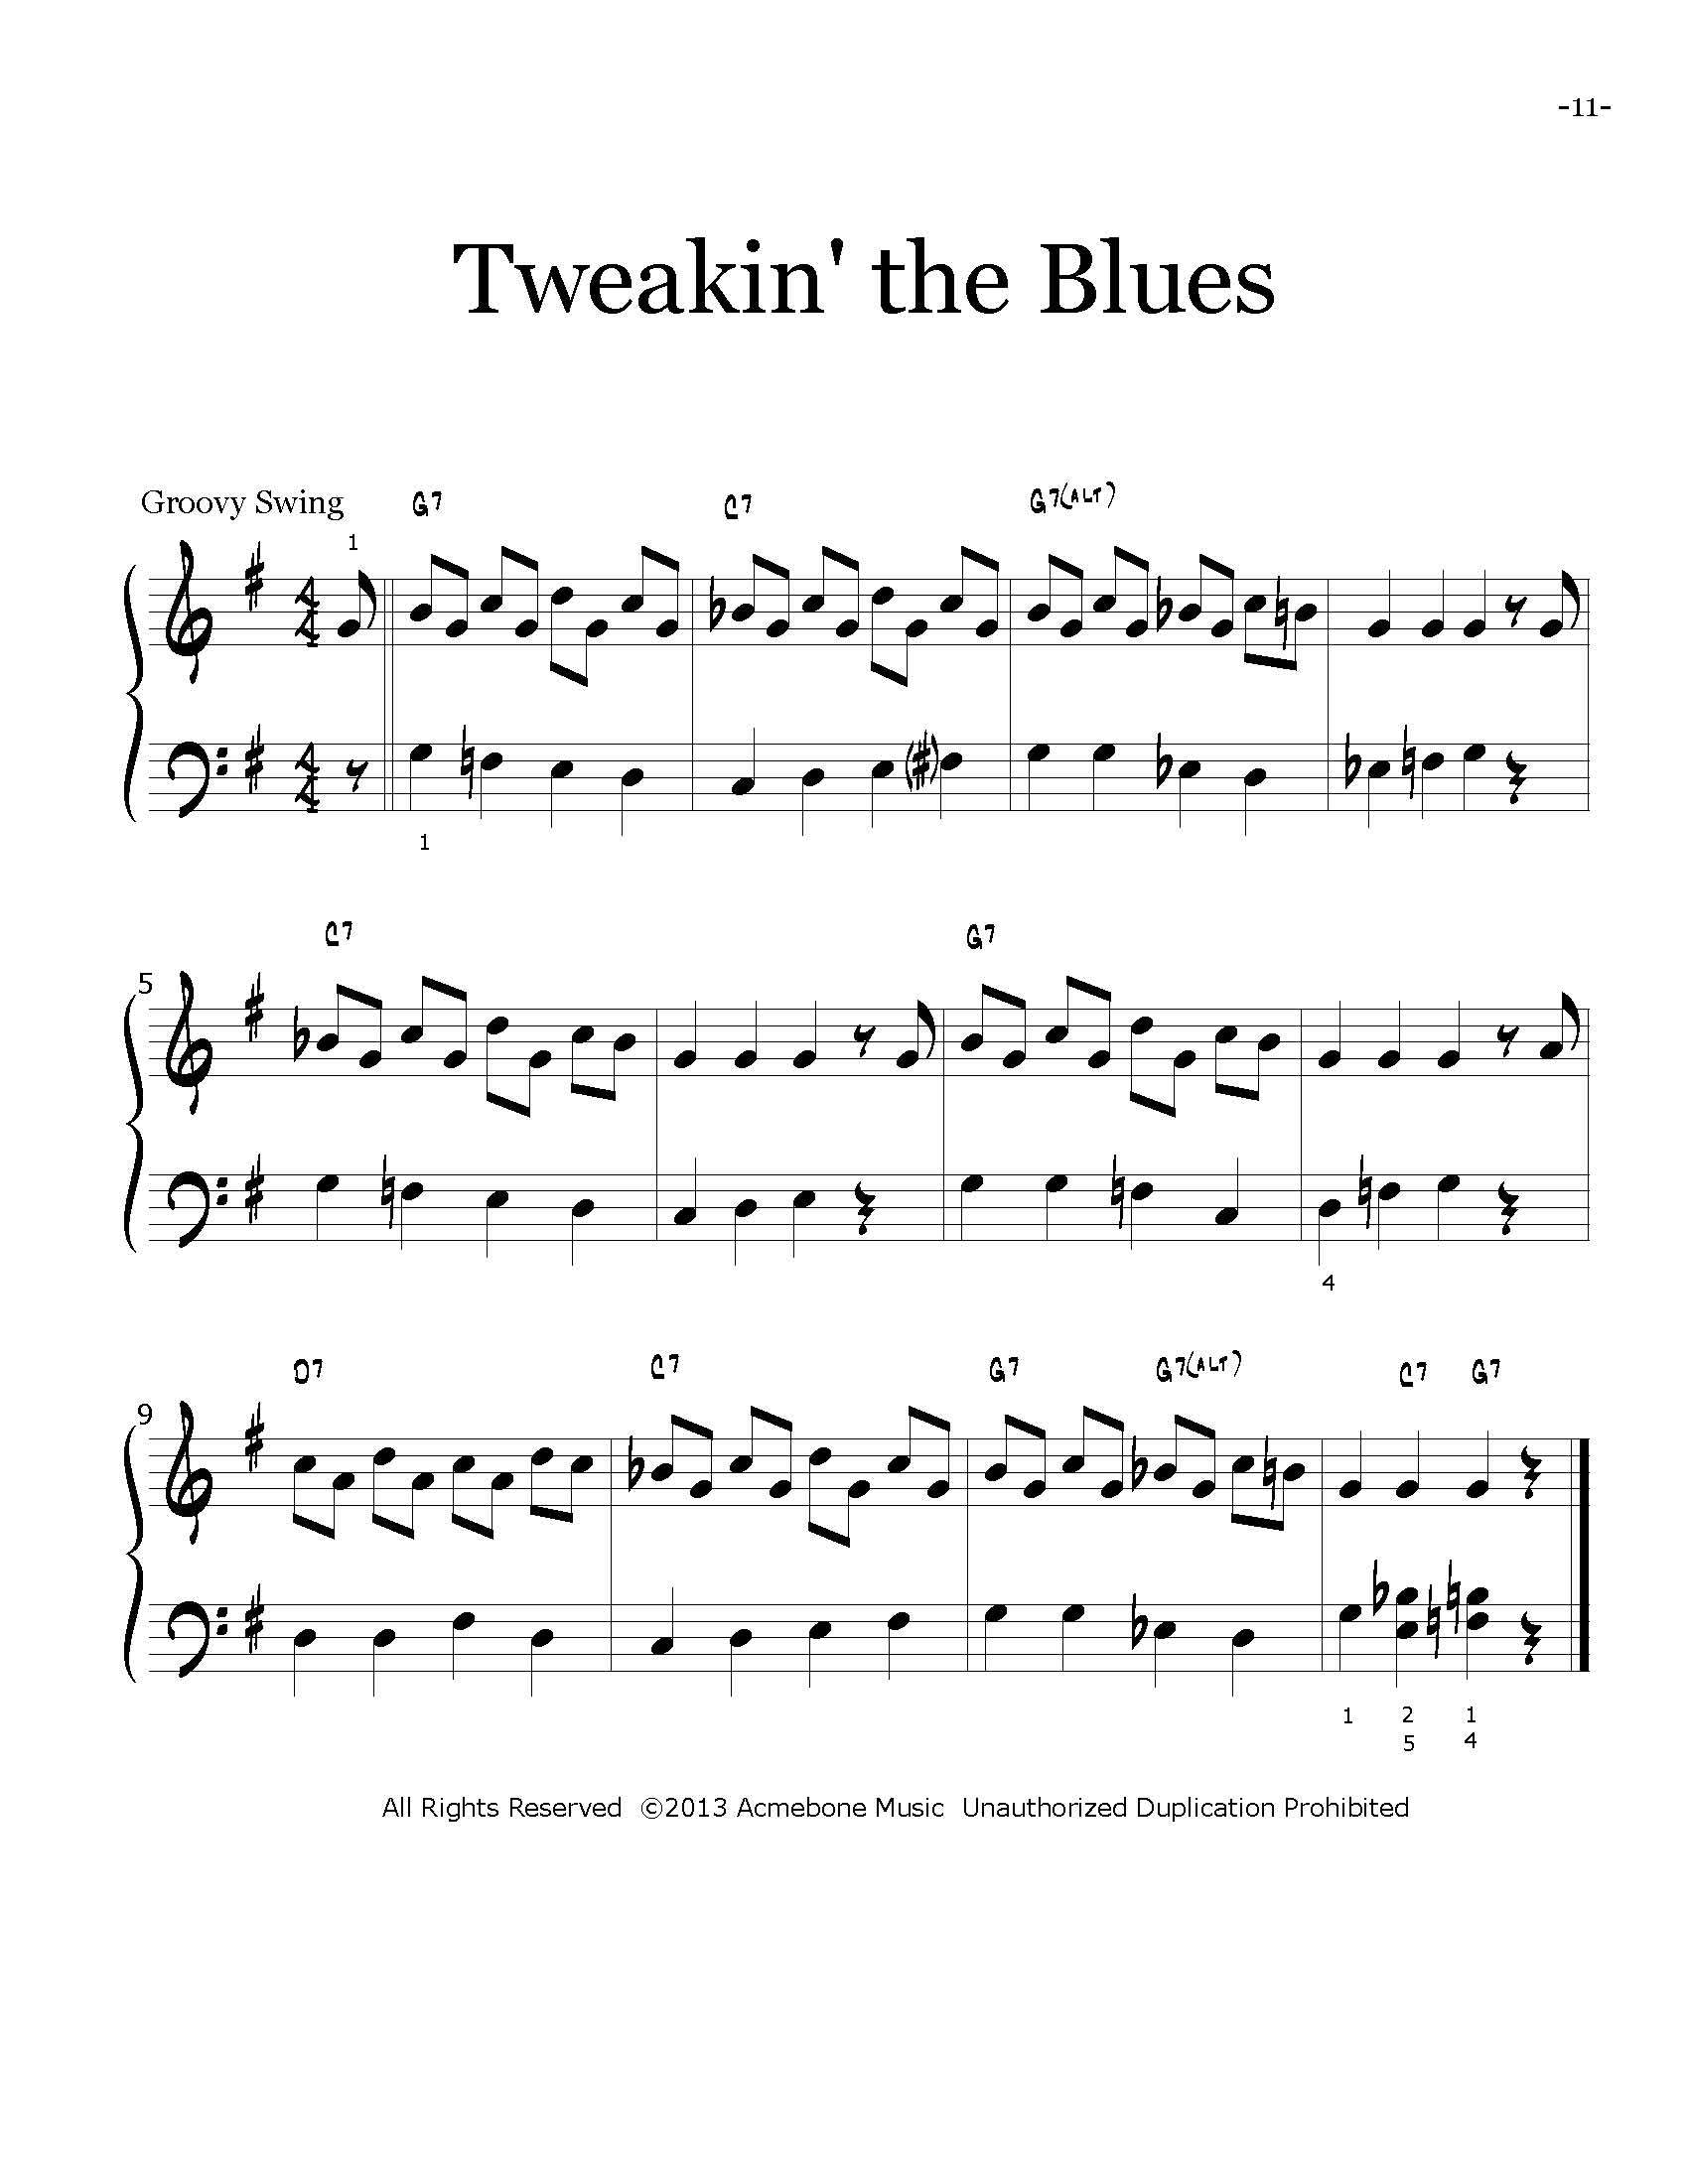 Progressive Jazz Etudes for Piano bk1 for web_Page_12.jpg